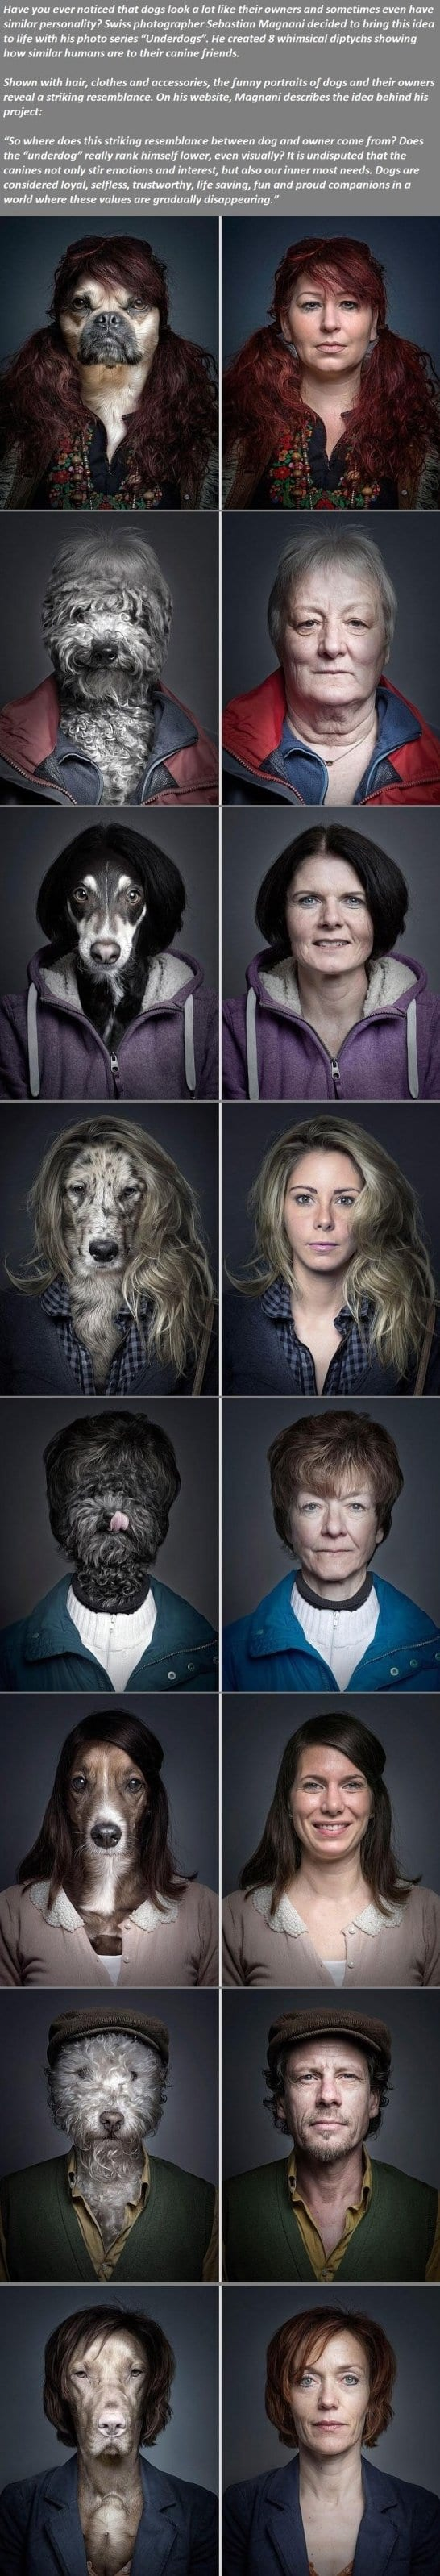 funny-dogs-looking-exactly-like-their-owners-meme